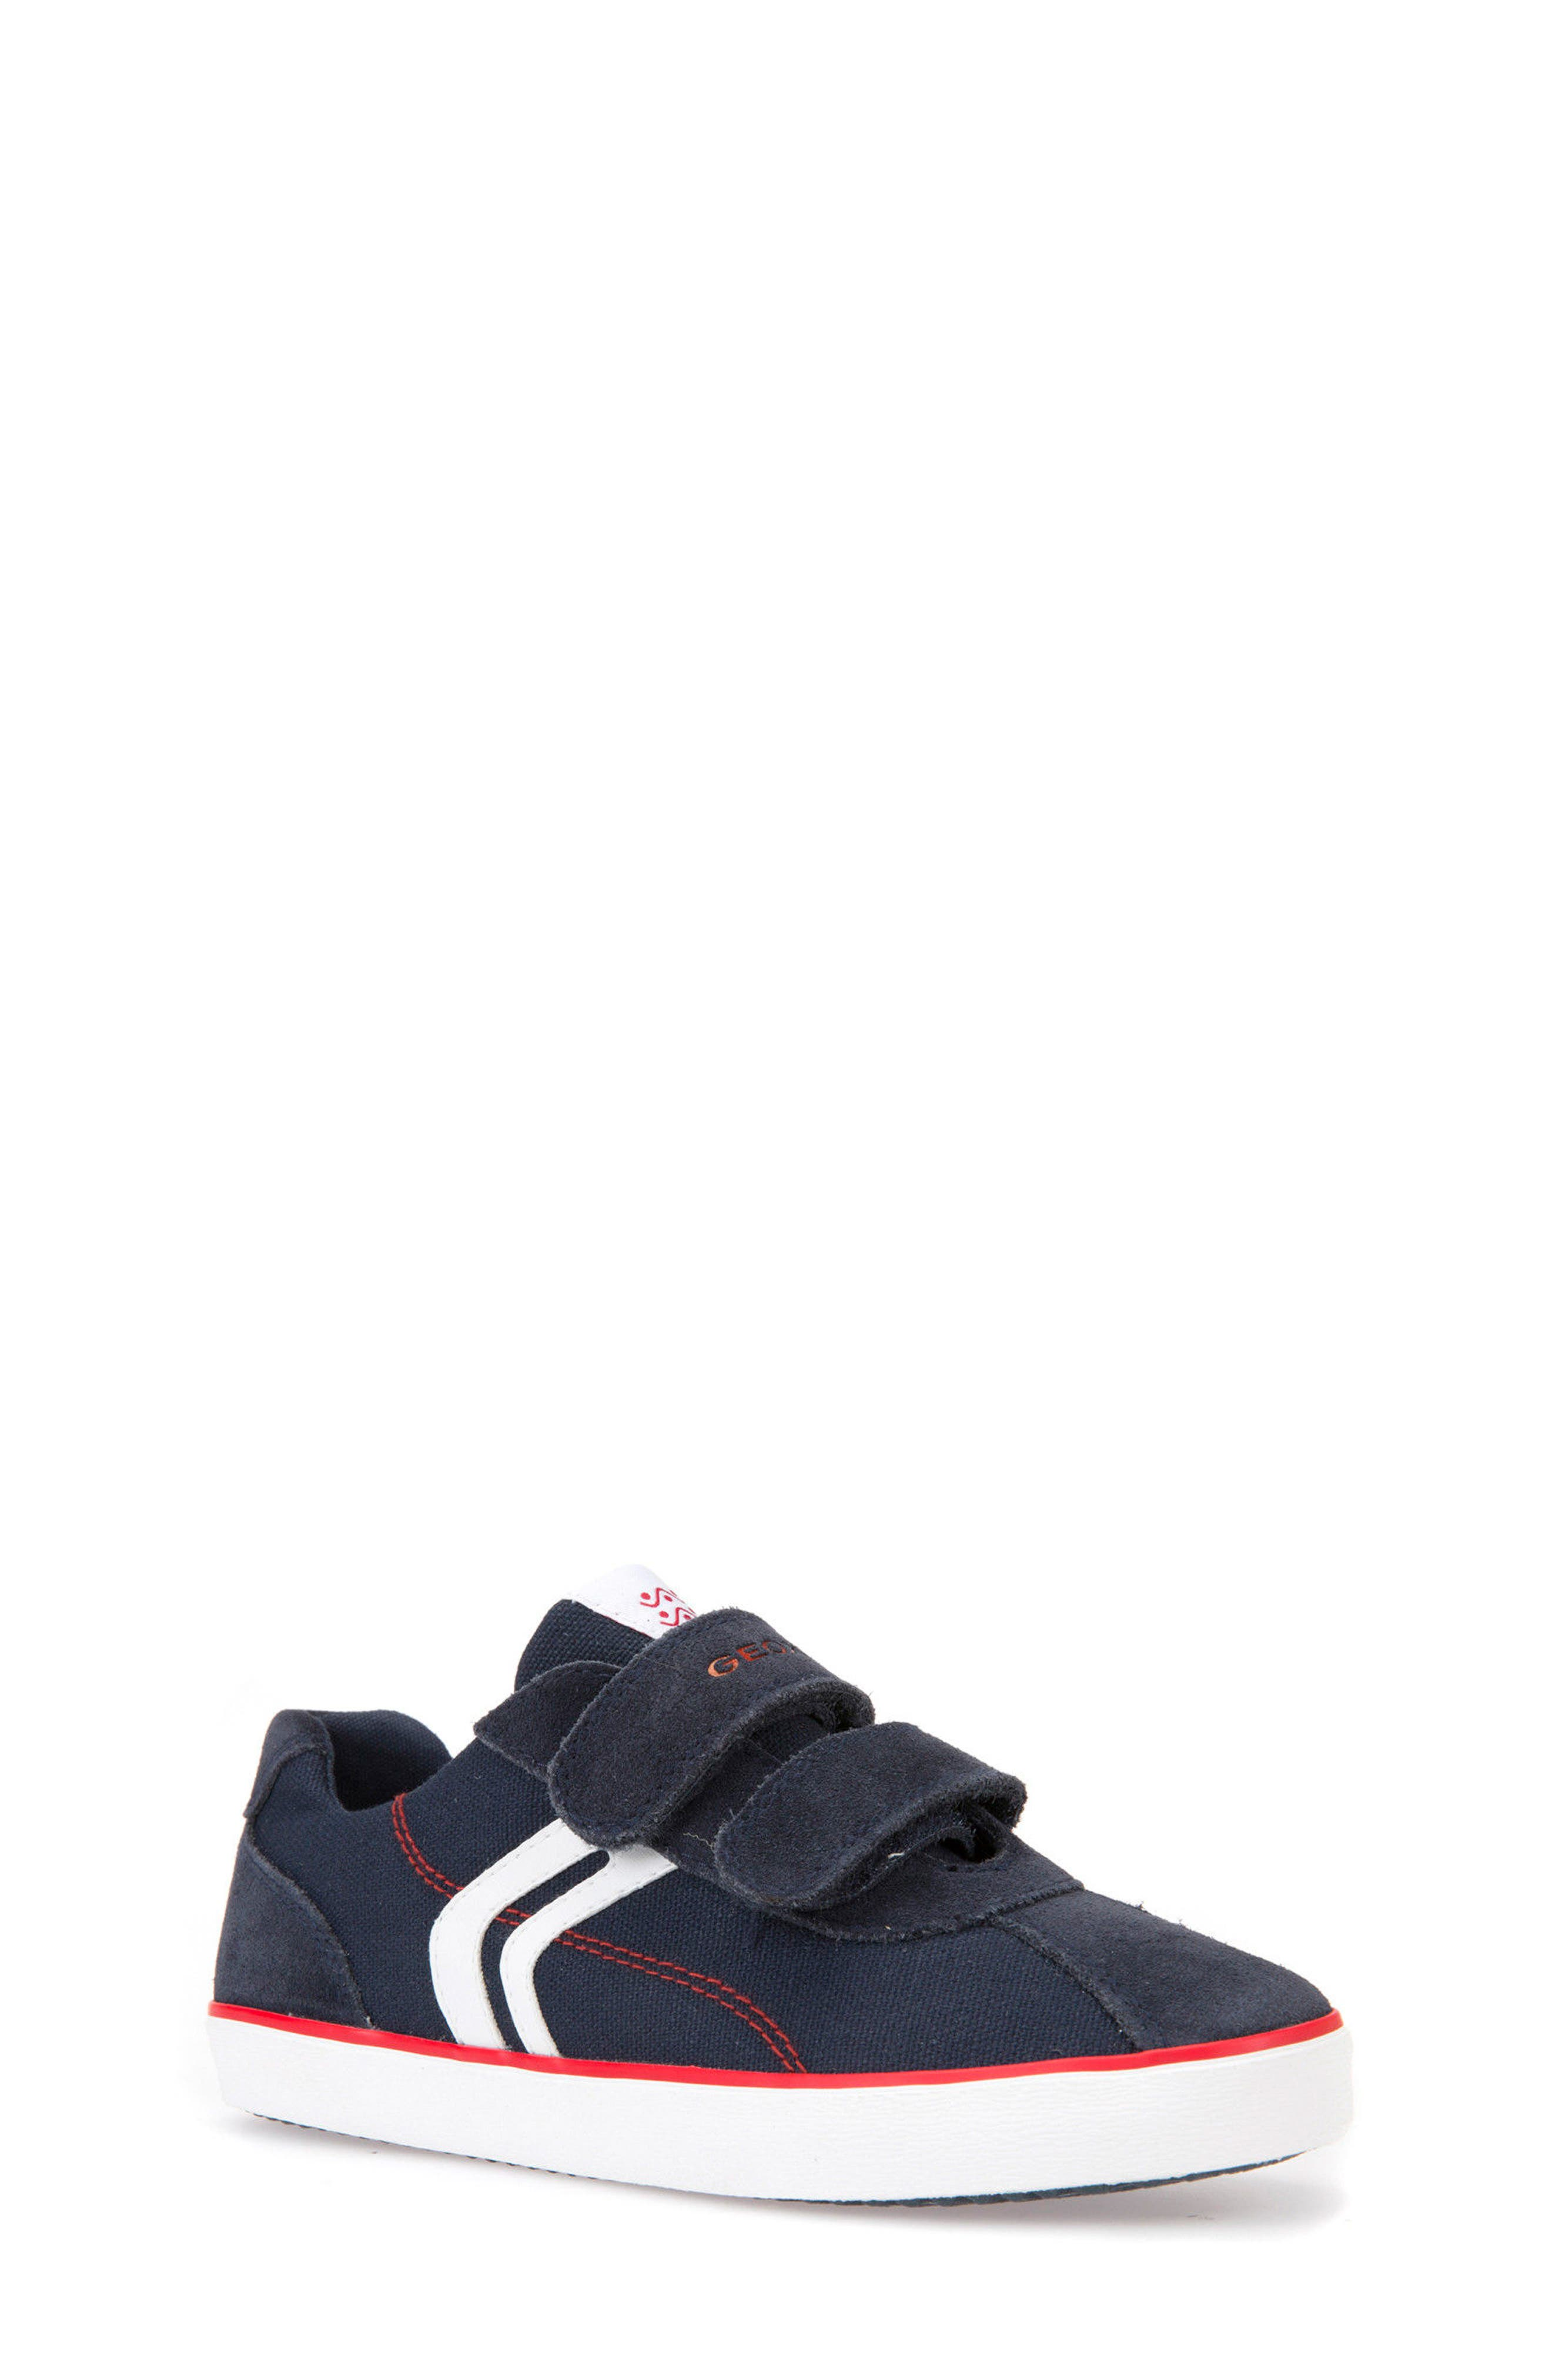 Kilwi Low Top Sneaker,                         Main,                         color, NAVY/ RED